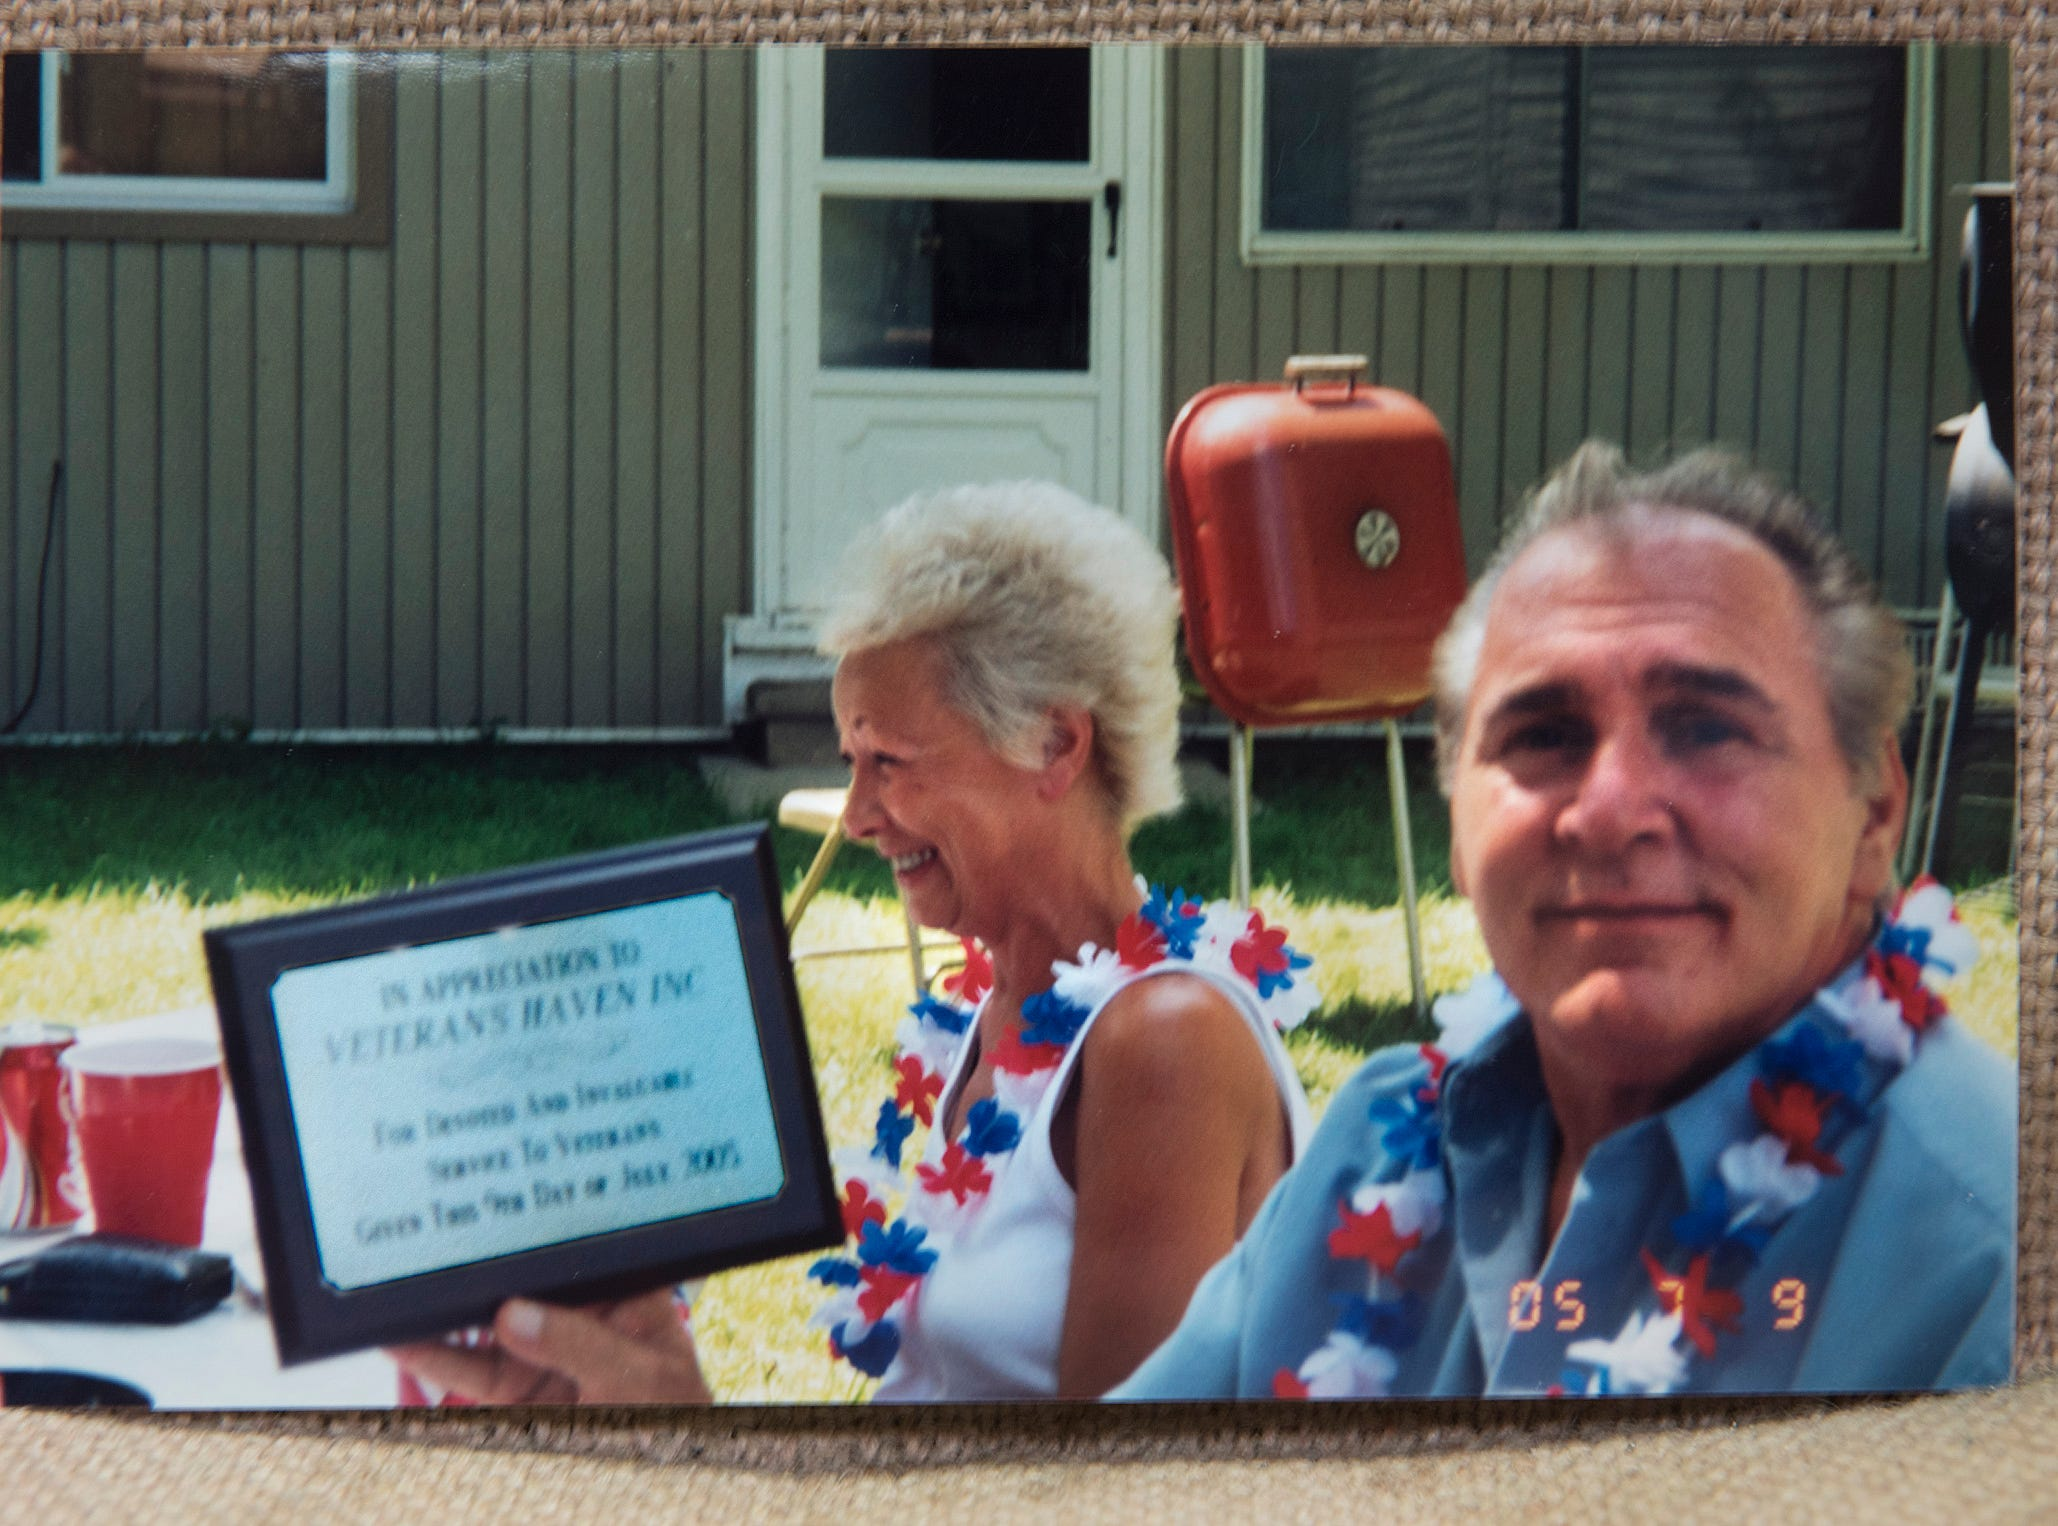 A family snapshot shows founder Vince Berna and his wife, Judy Berna, at a barbeque where they were honored for their efforts.